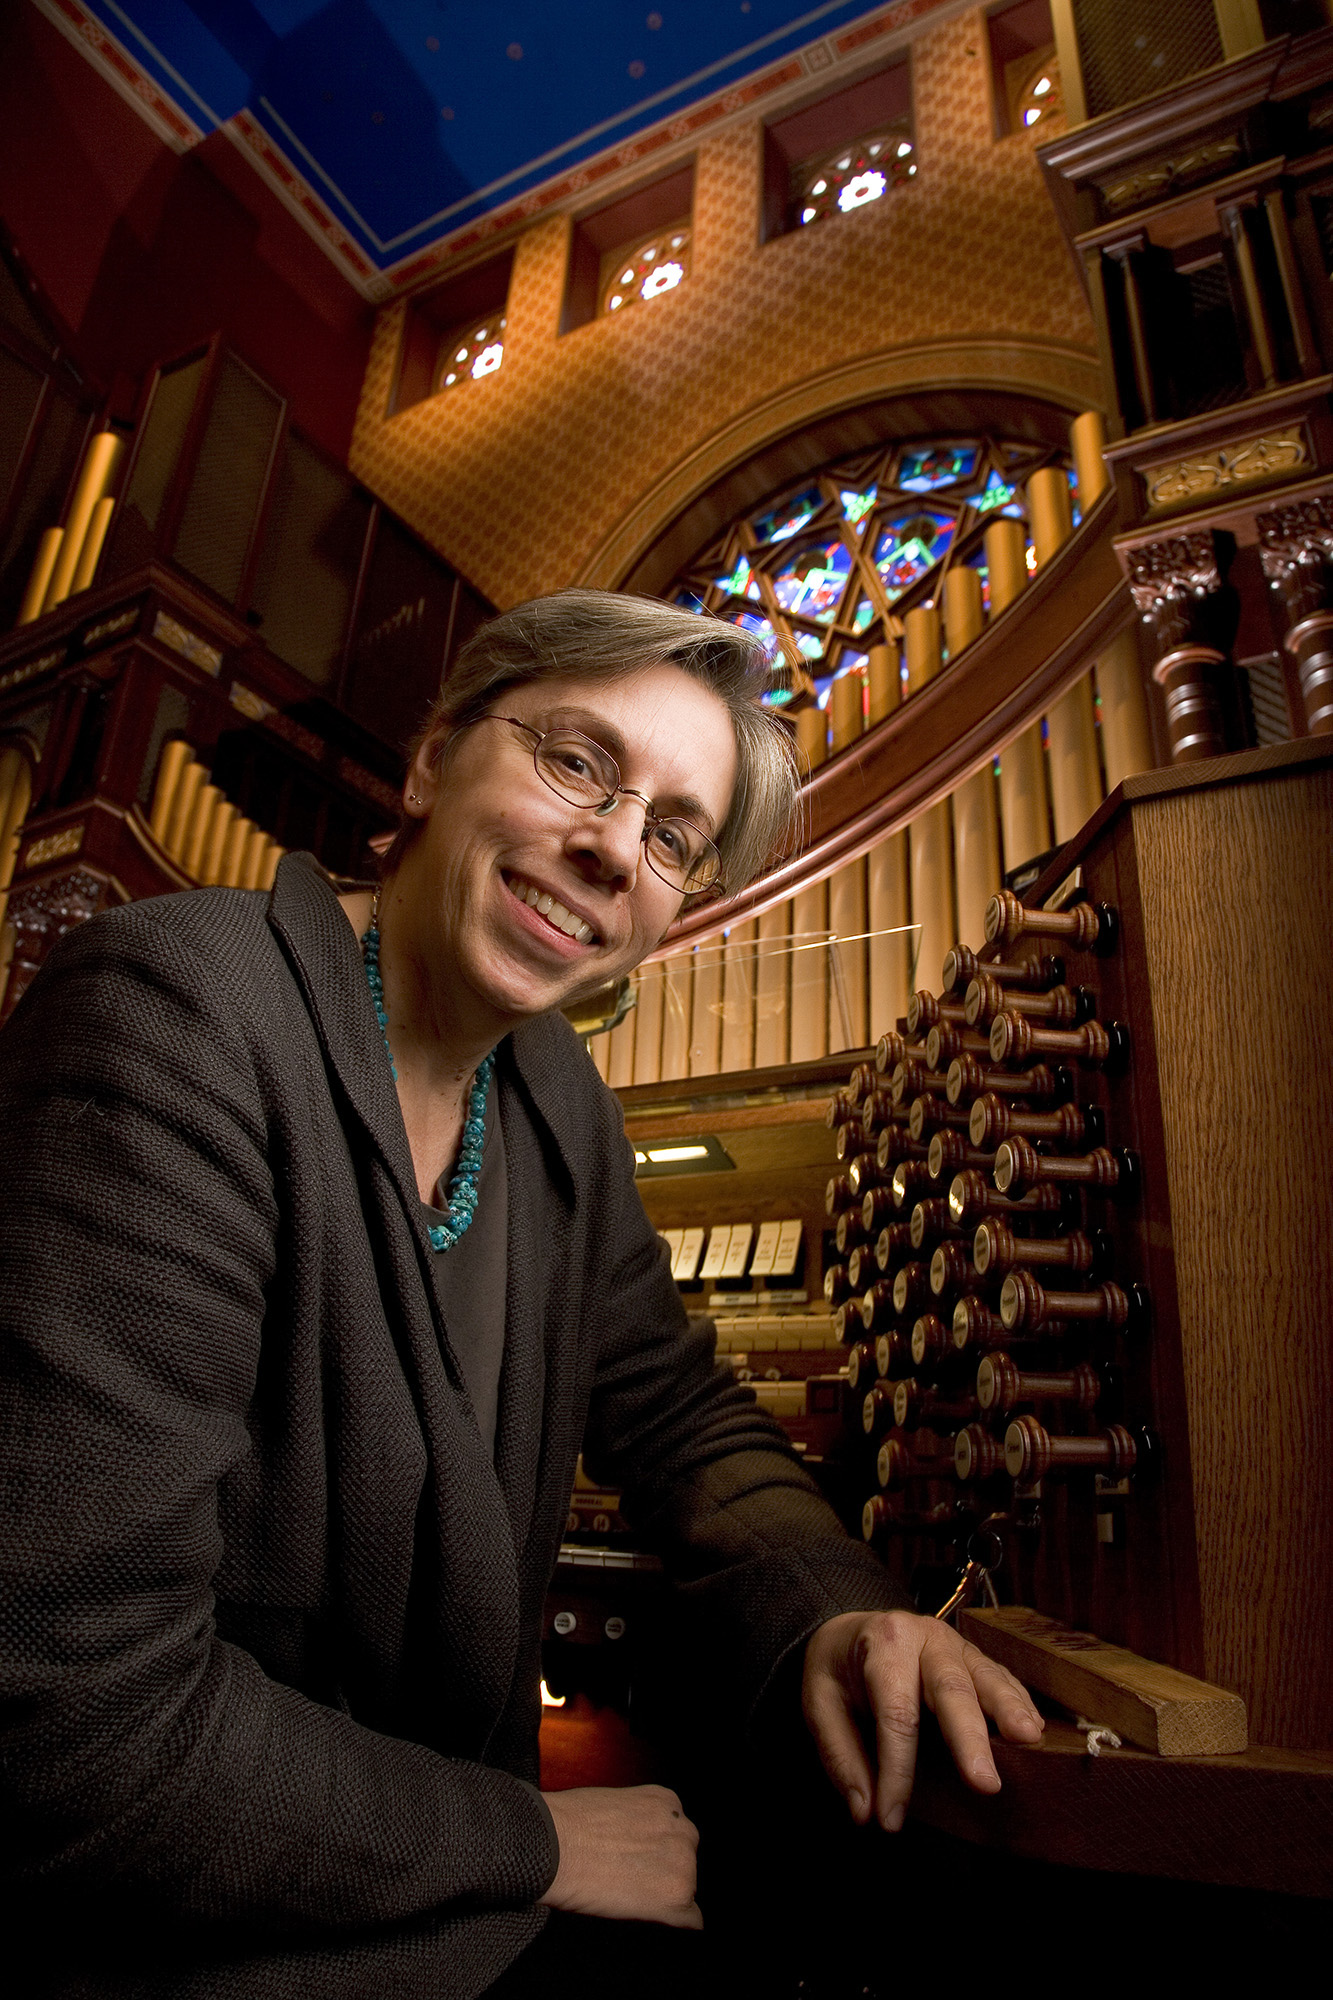 Archer Gail poses for a picture next to an organ